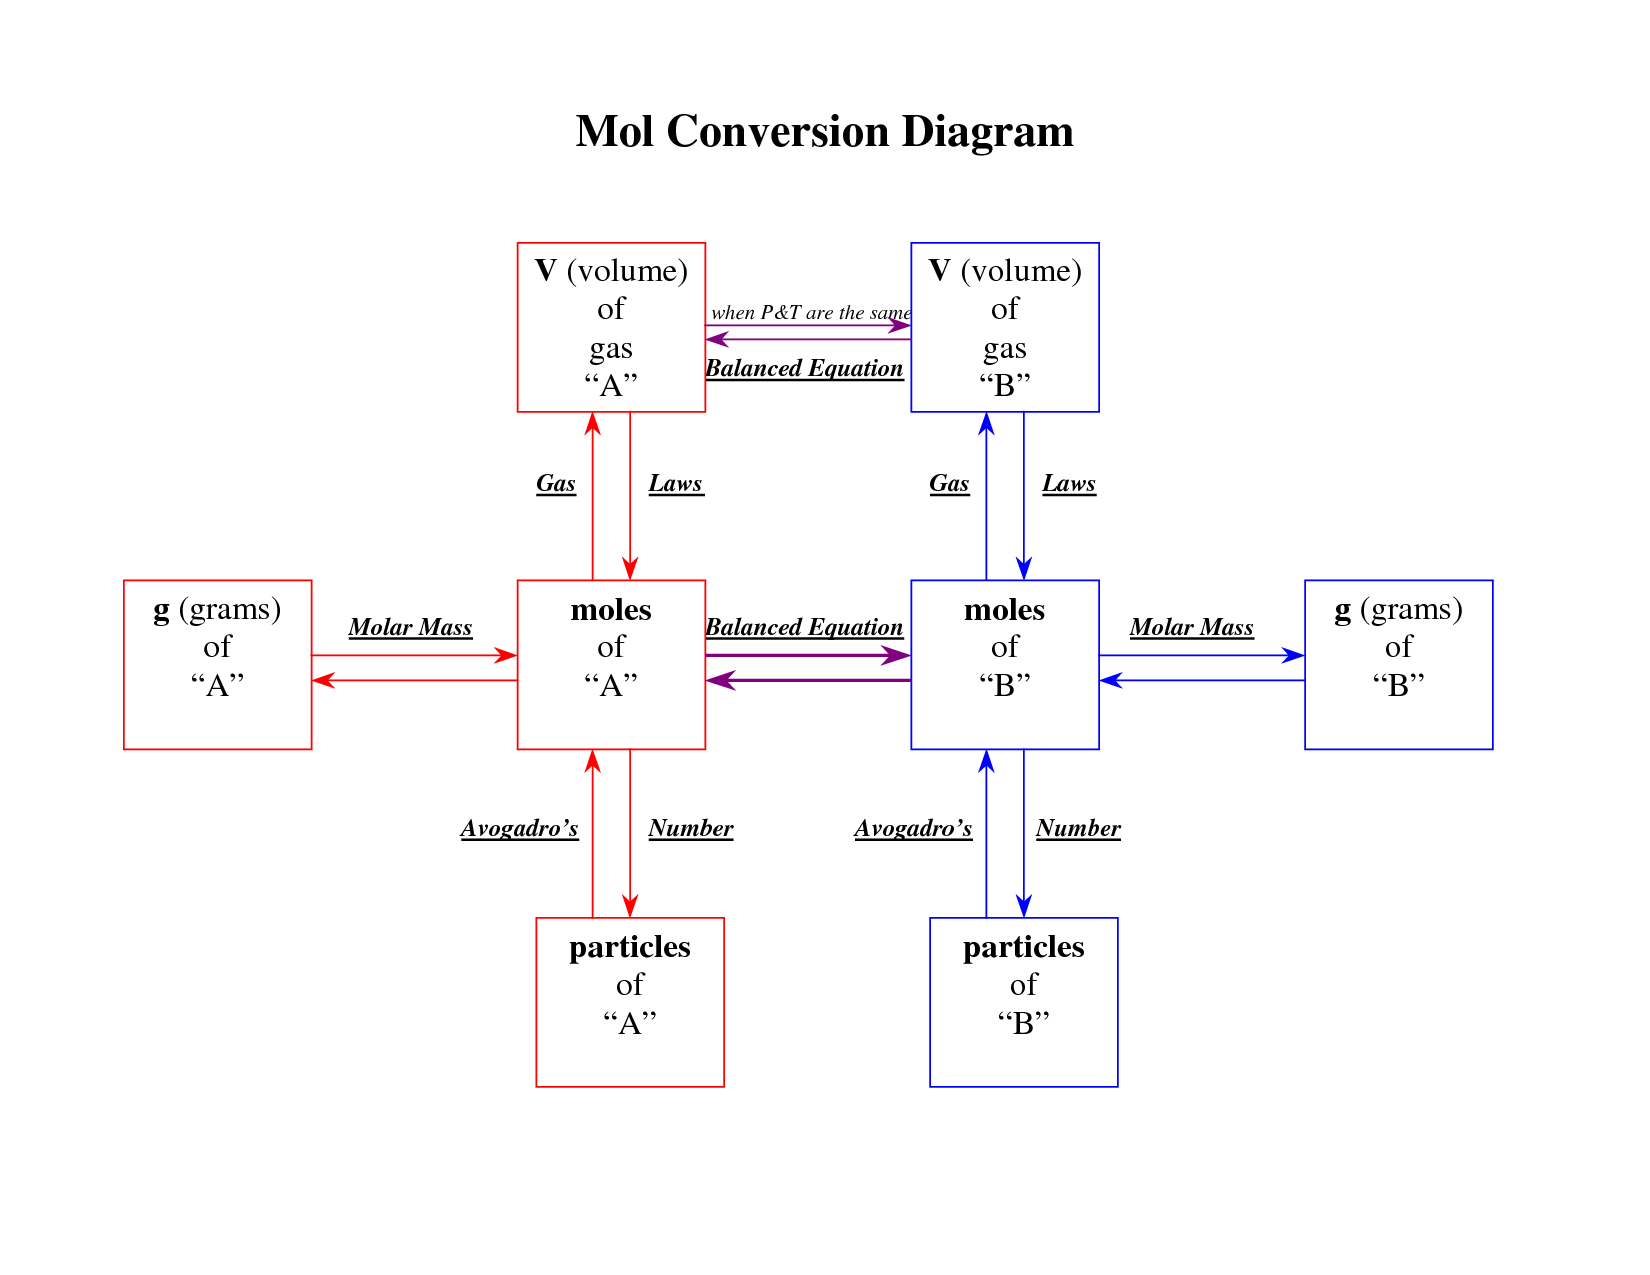 Chemistry conversion chart moles to grams metric conversion ratelco cheat sheet for converting between moles and grams and atoms nvjuhfo Image collections